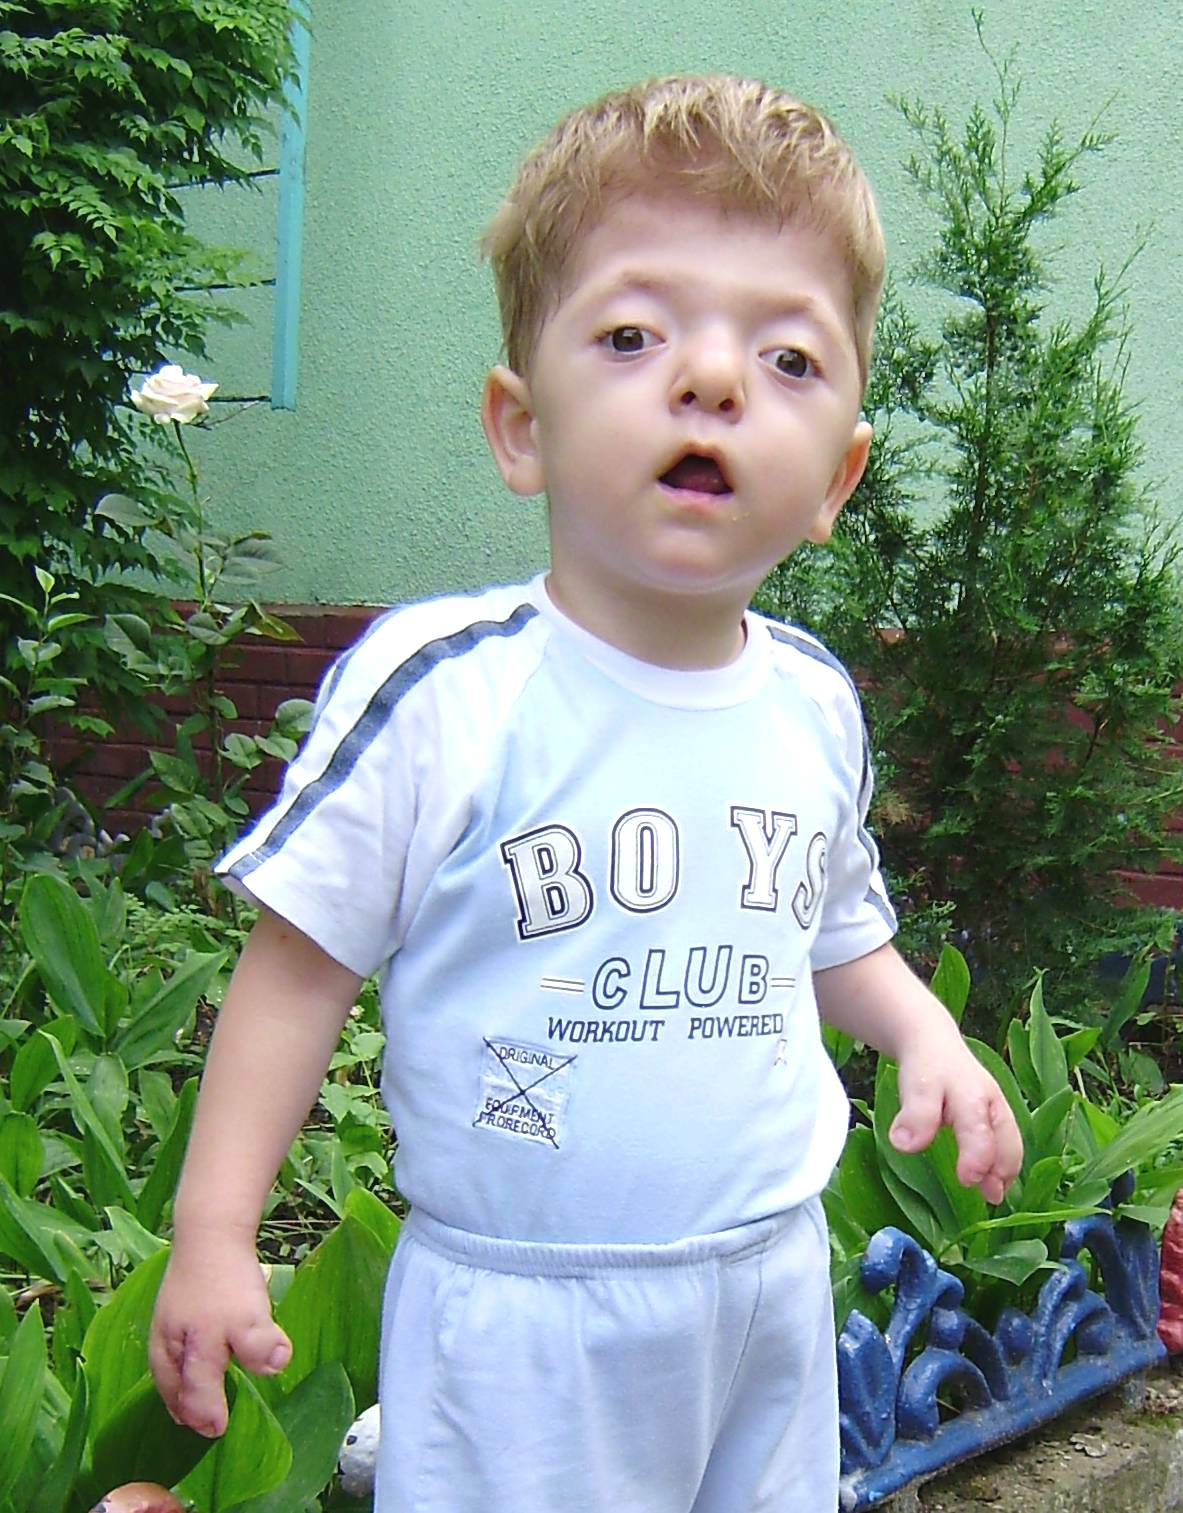 http://reecesrainbow.org/wp-content/uploads/images/jonah-1-cropped.jpg